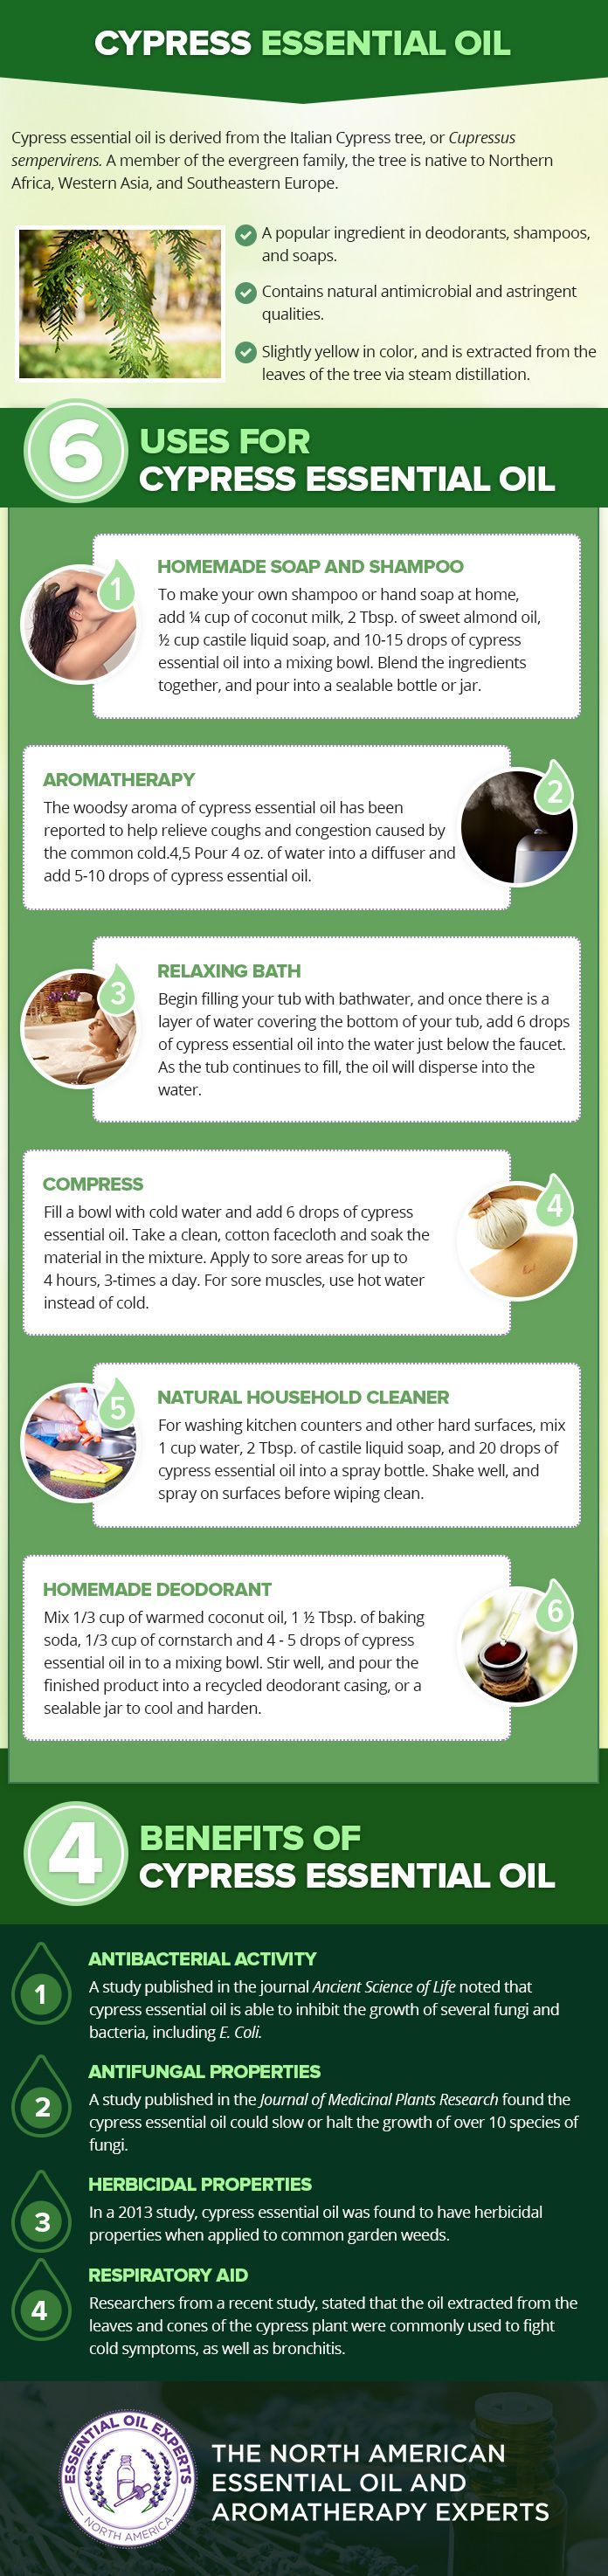 Cypress Essential Oil Uses & Benefits